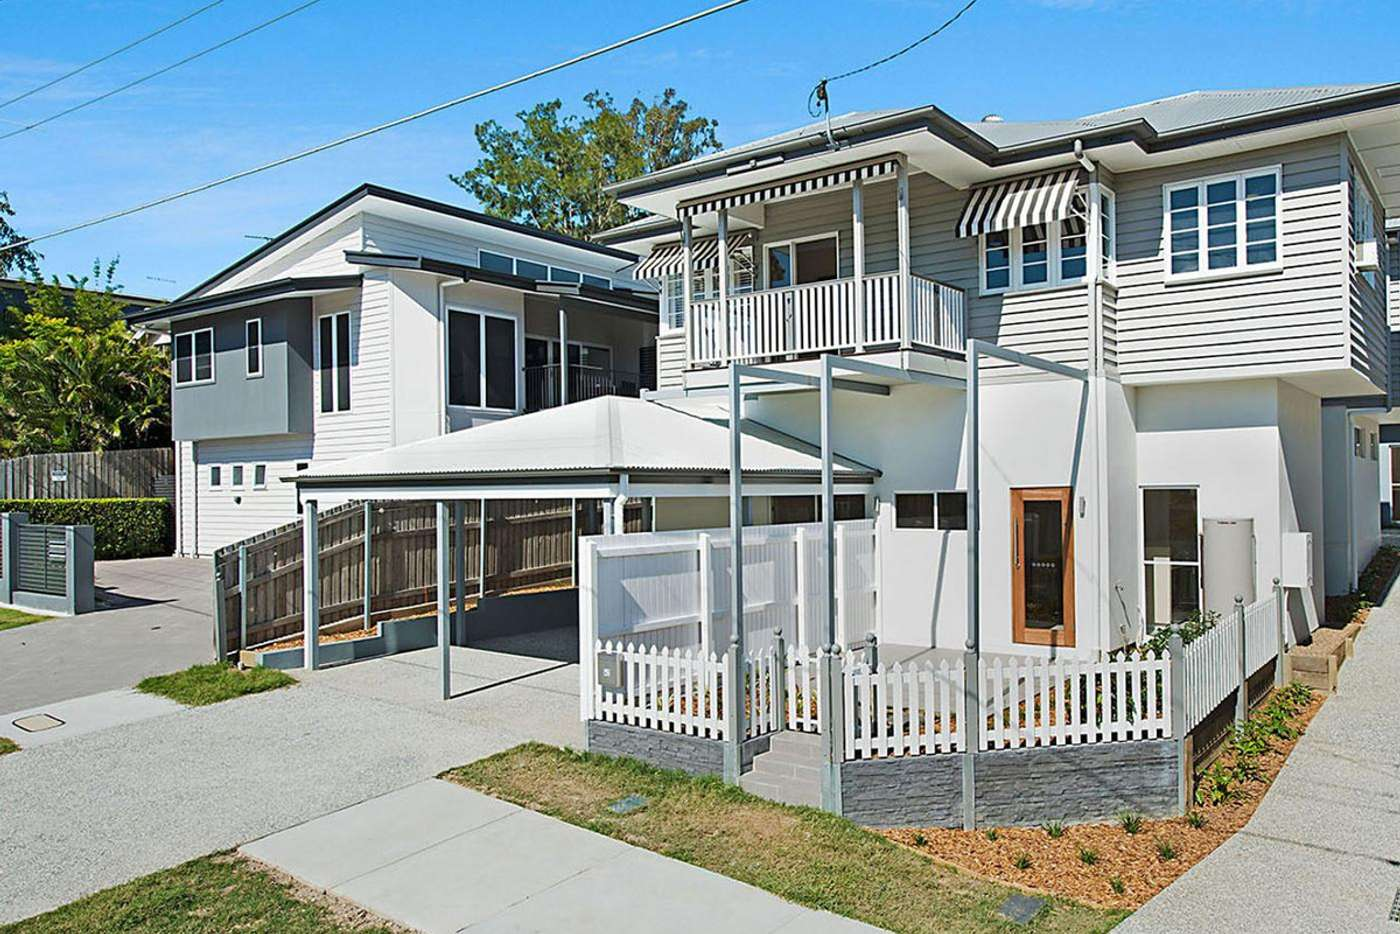 Main view of Homely house listing, 42 Renton Street, Camp Hill QLD 4152